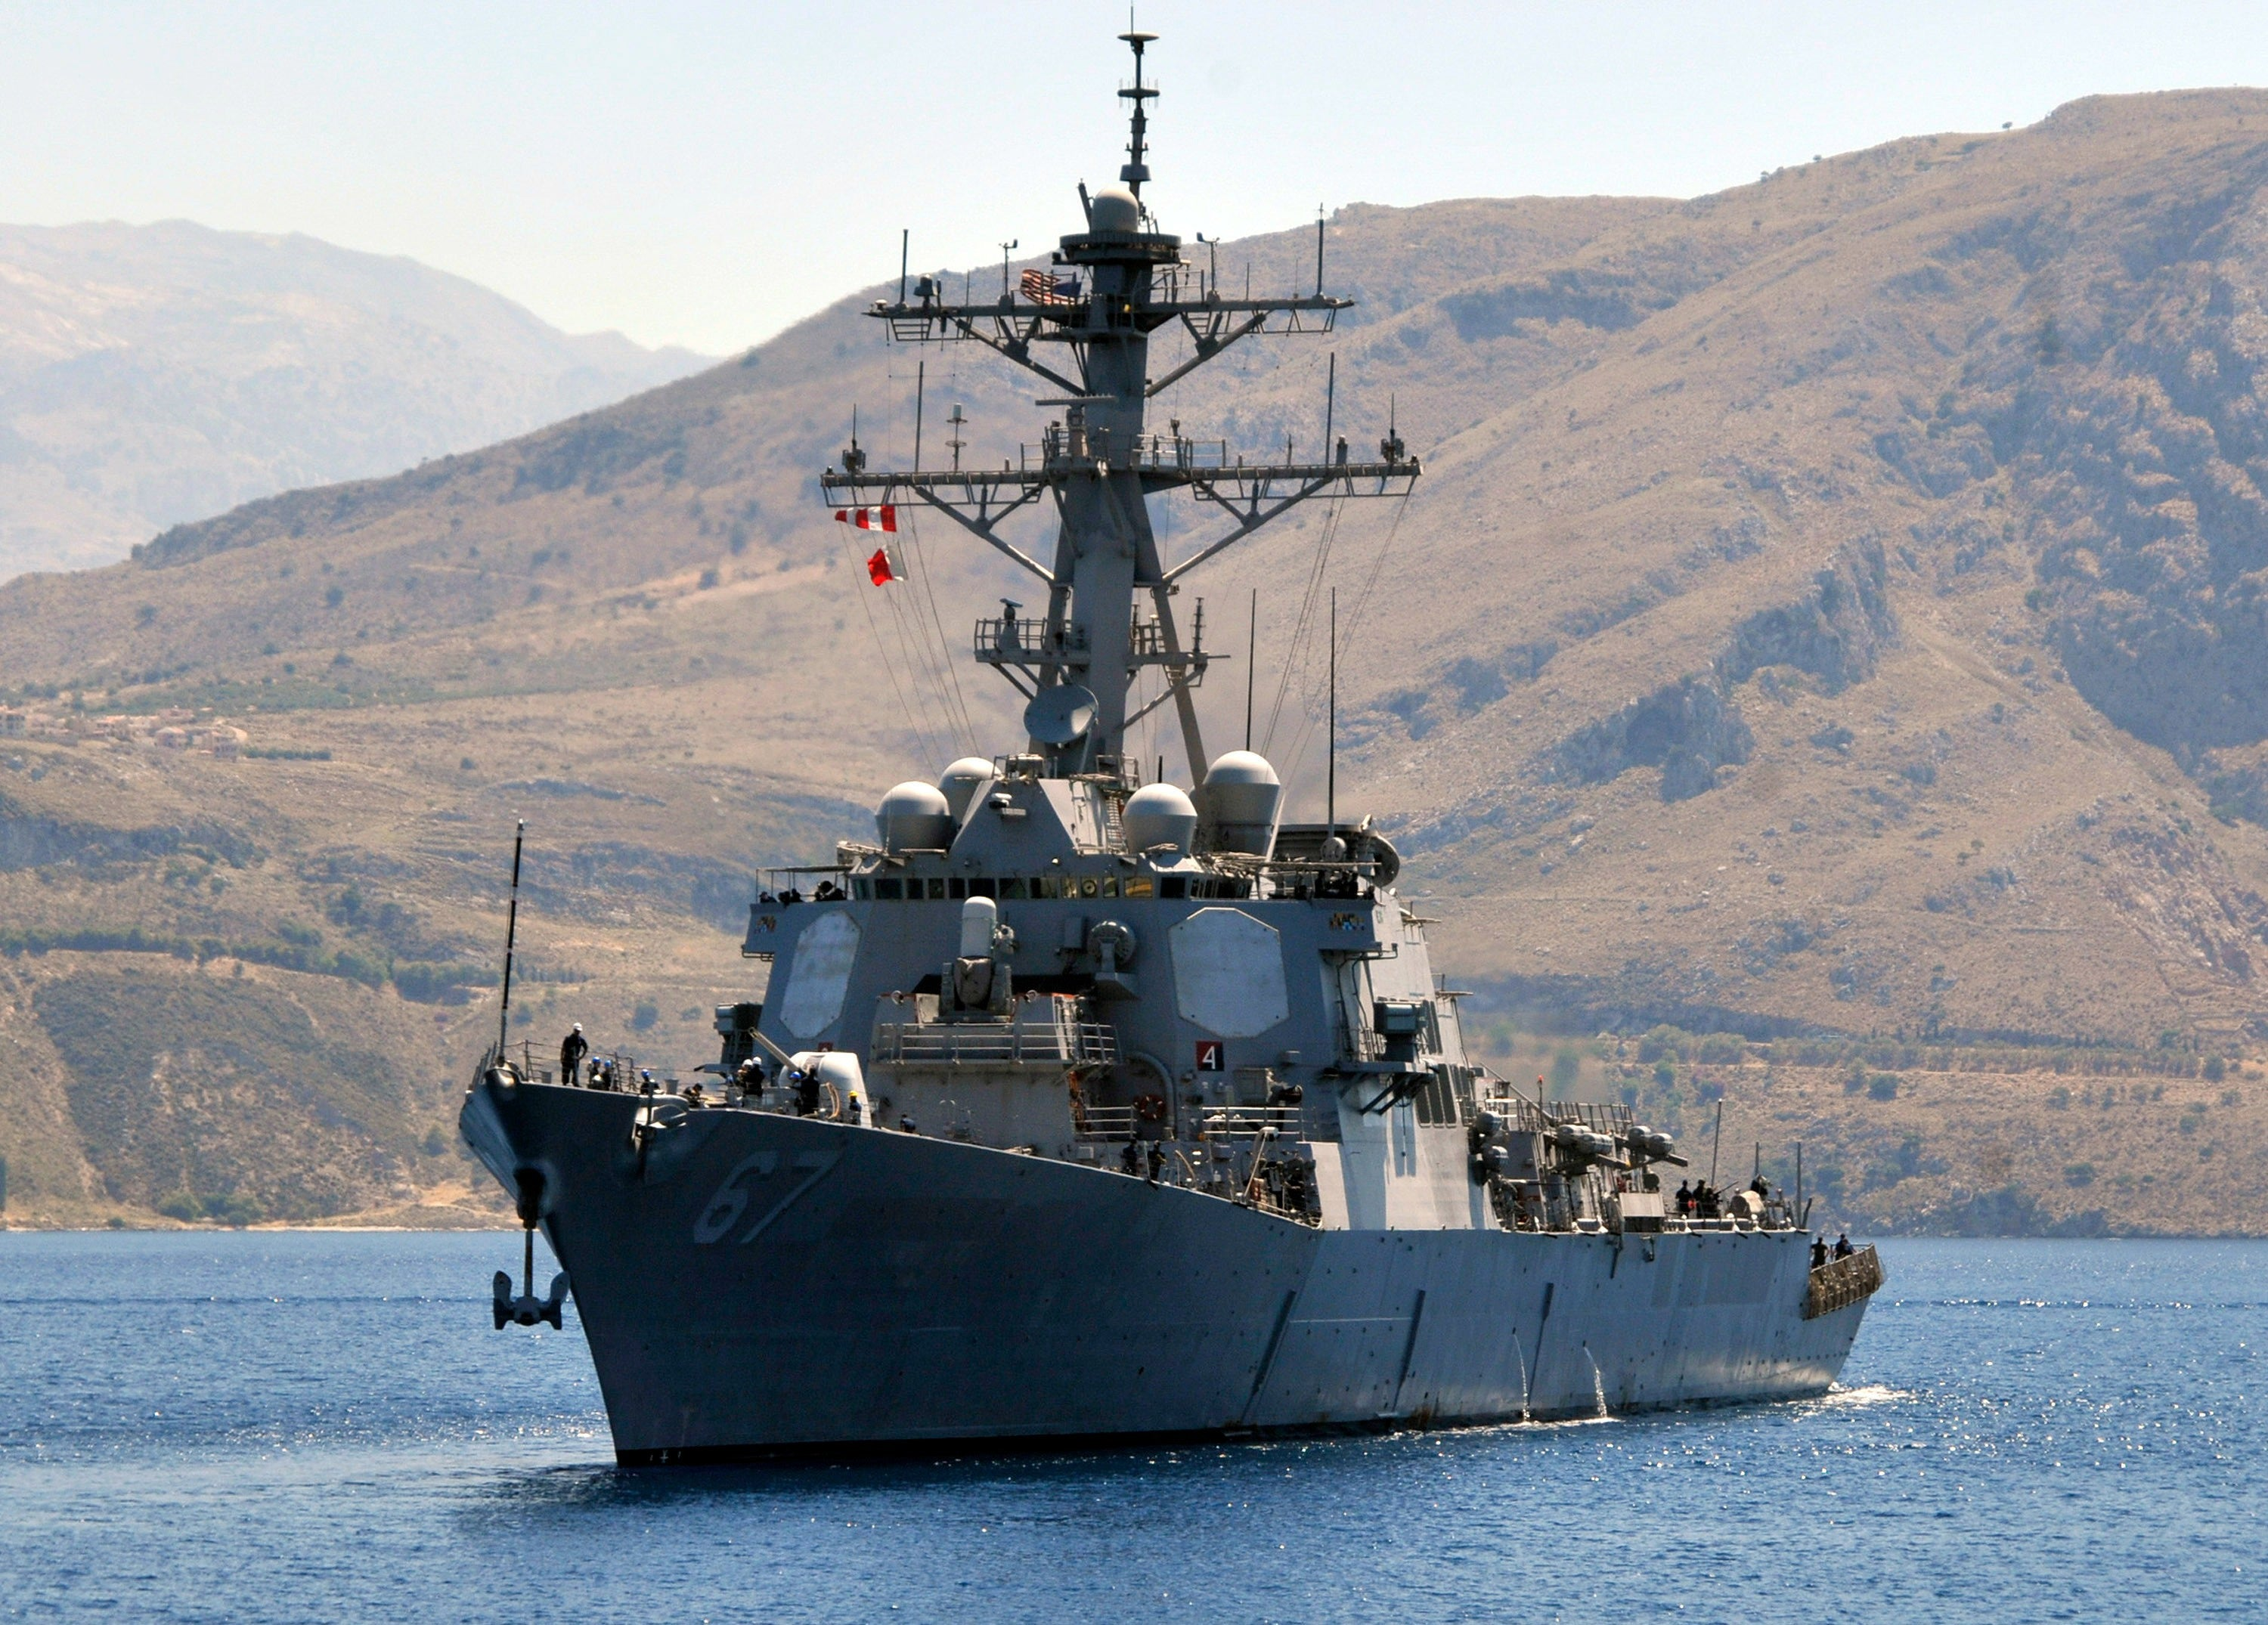 "USS Cole DDG-67 Souda Bay, Greece June 22, 2012 - 5 x 7"" Photograph"